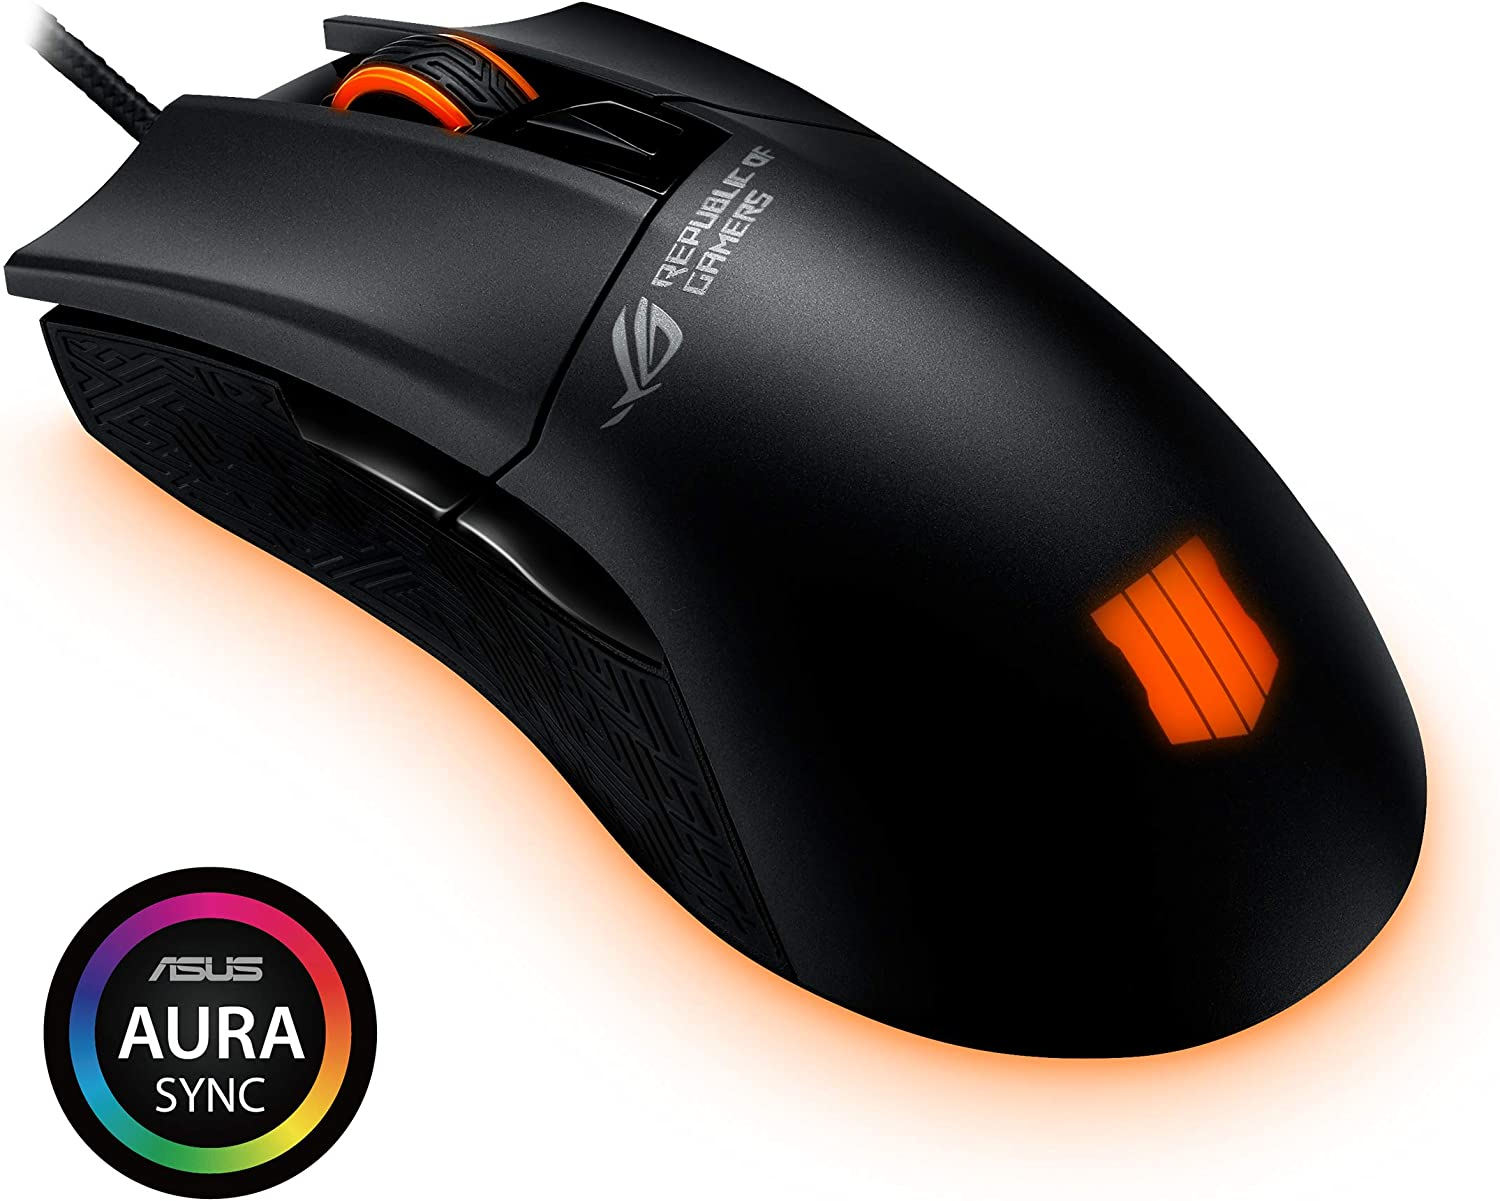 ASUS Optical Gaming Mouse - ROG Gladius II Origin Call of Duty: Black Ops 4 Edition | Ergonomic Right-handed PC Gaming Mouse for FPS Games | 12000 DPI Optical Sensor | Aura Sync RGB, Armoury II